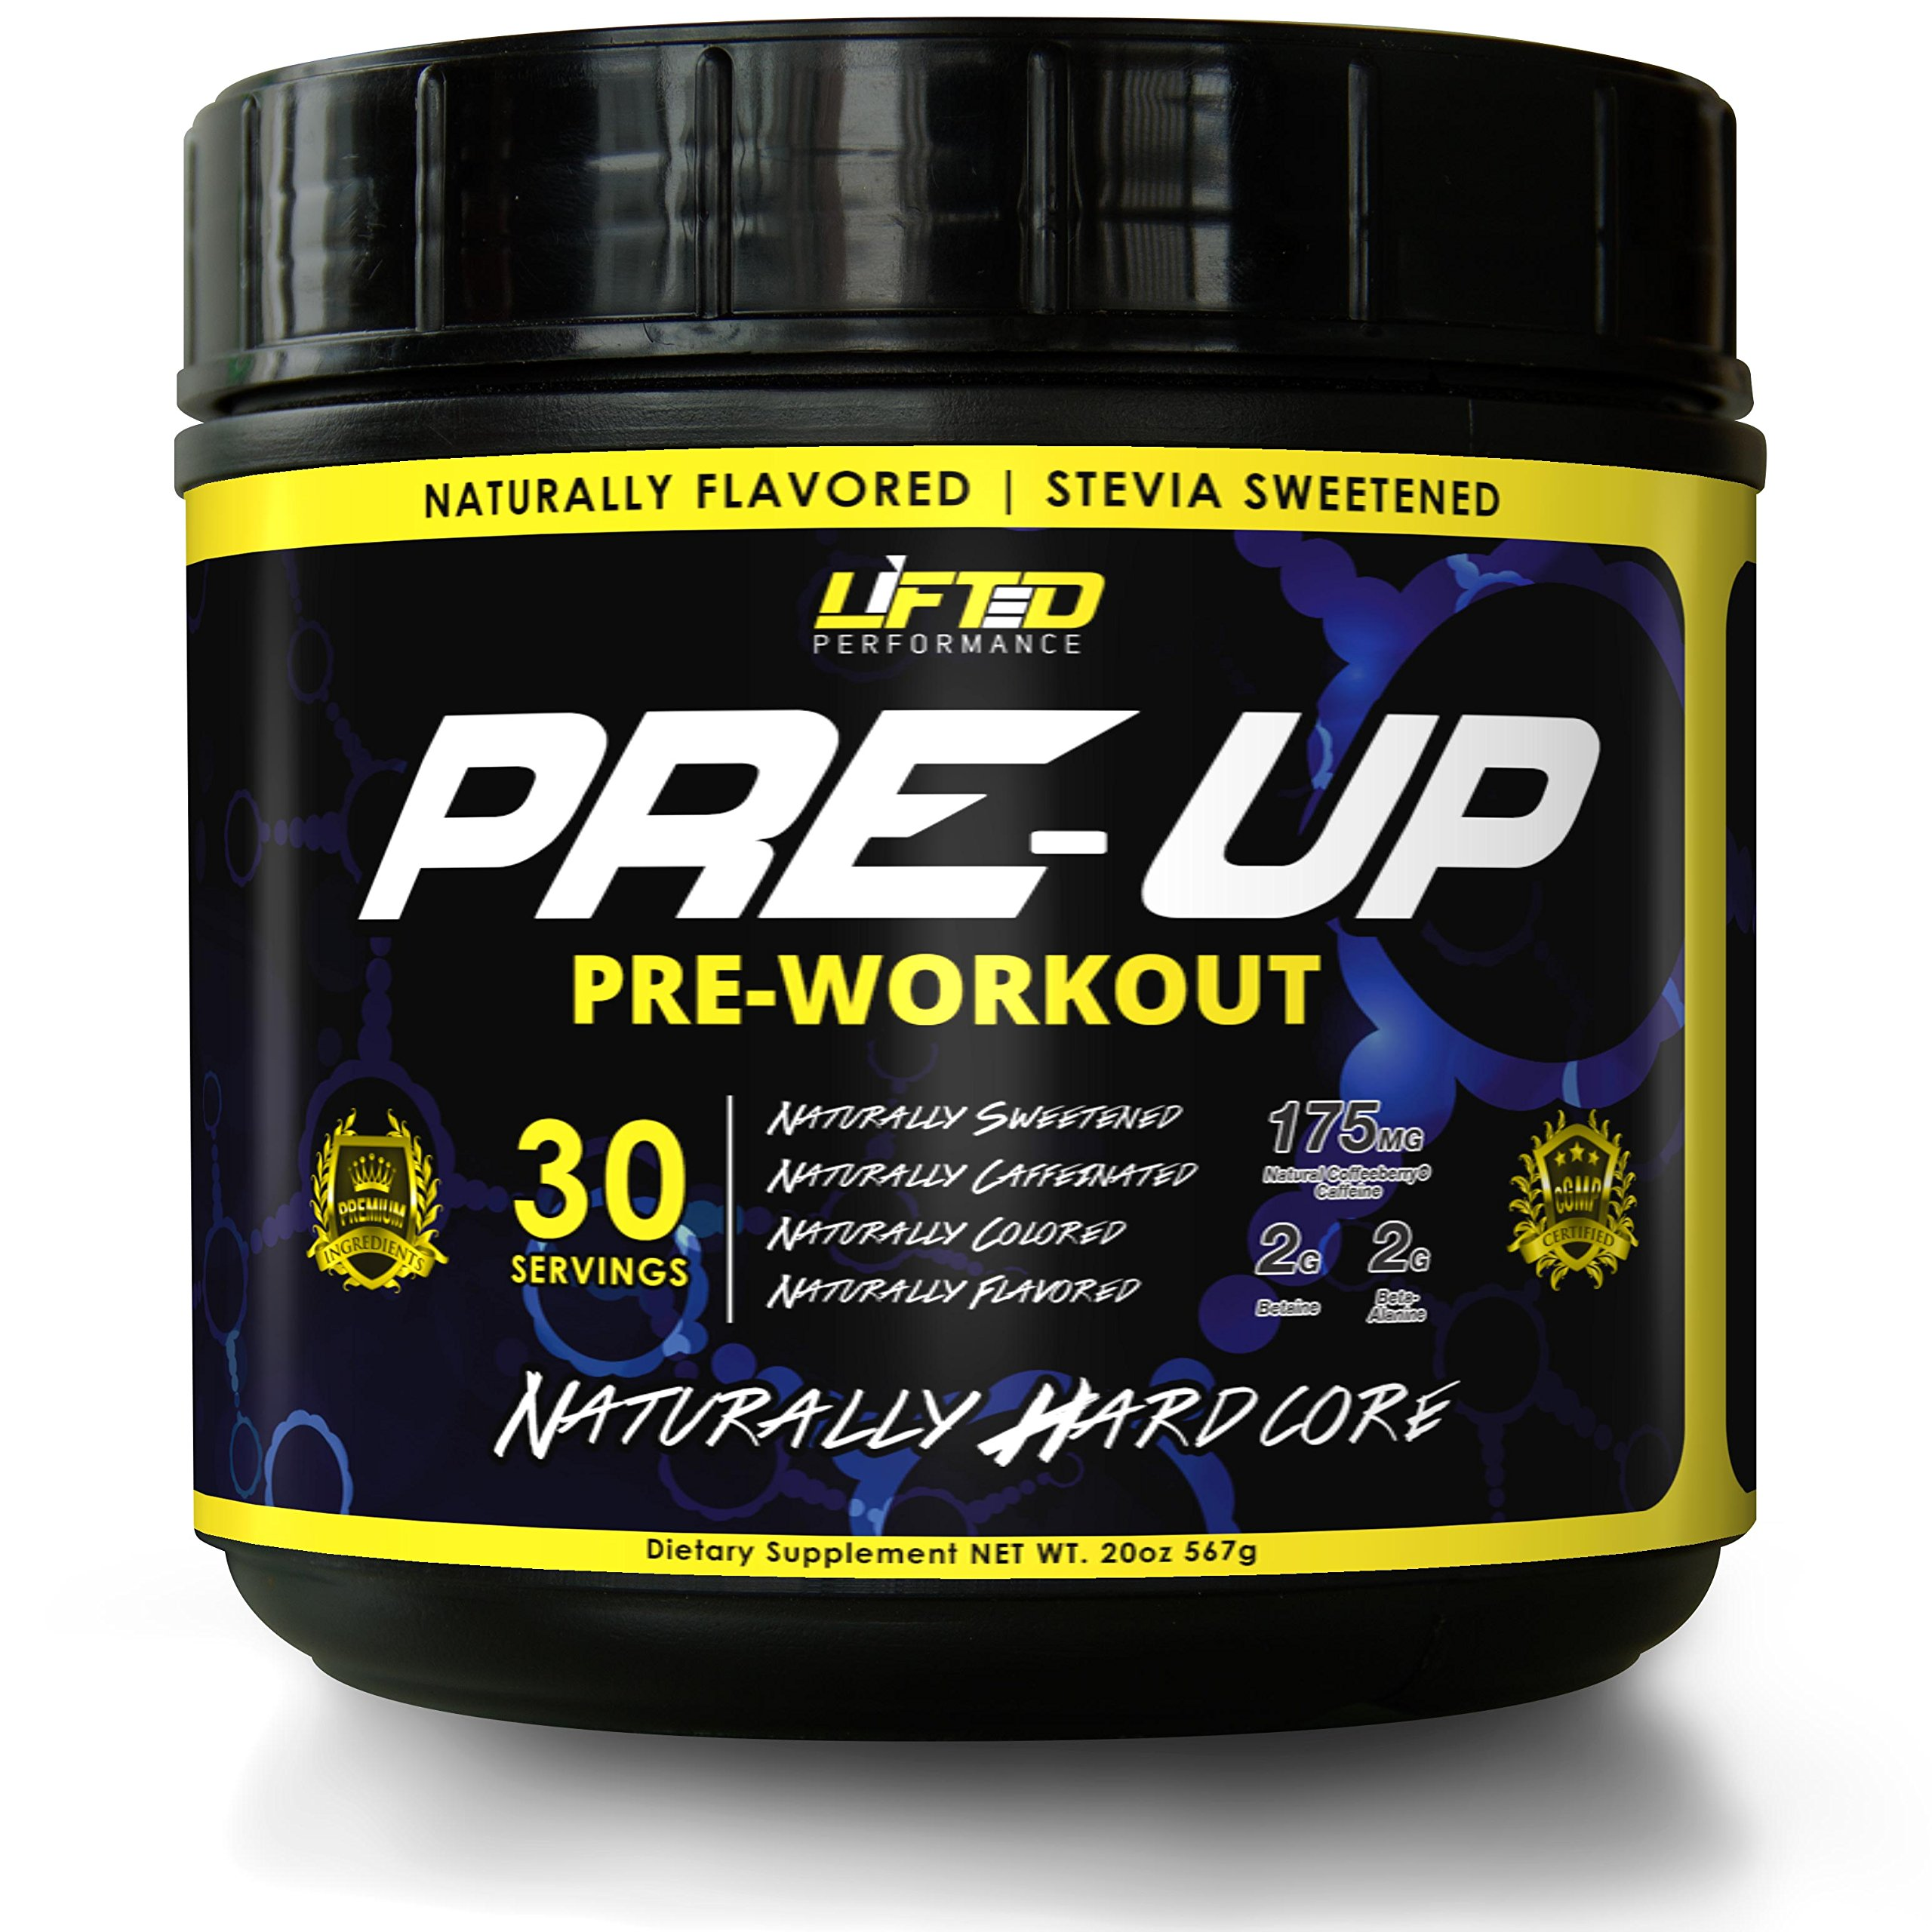 PRE-UP Best Natural Pre Workout Supplements for Men and Women. Increase energy & focus, boost strength & pumps! Stevia Sweetened. No Side Effect PreWorkout Powder by Lifted Performance. (60 Scoops)